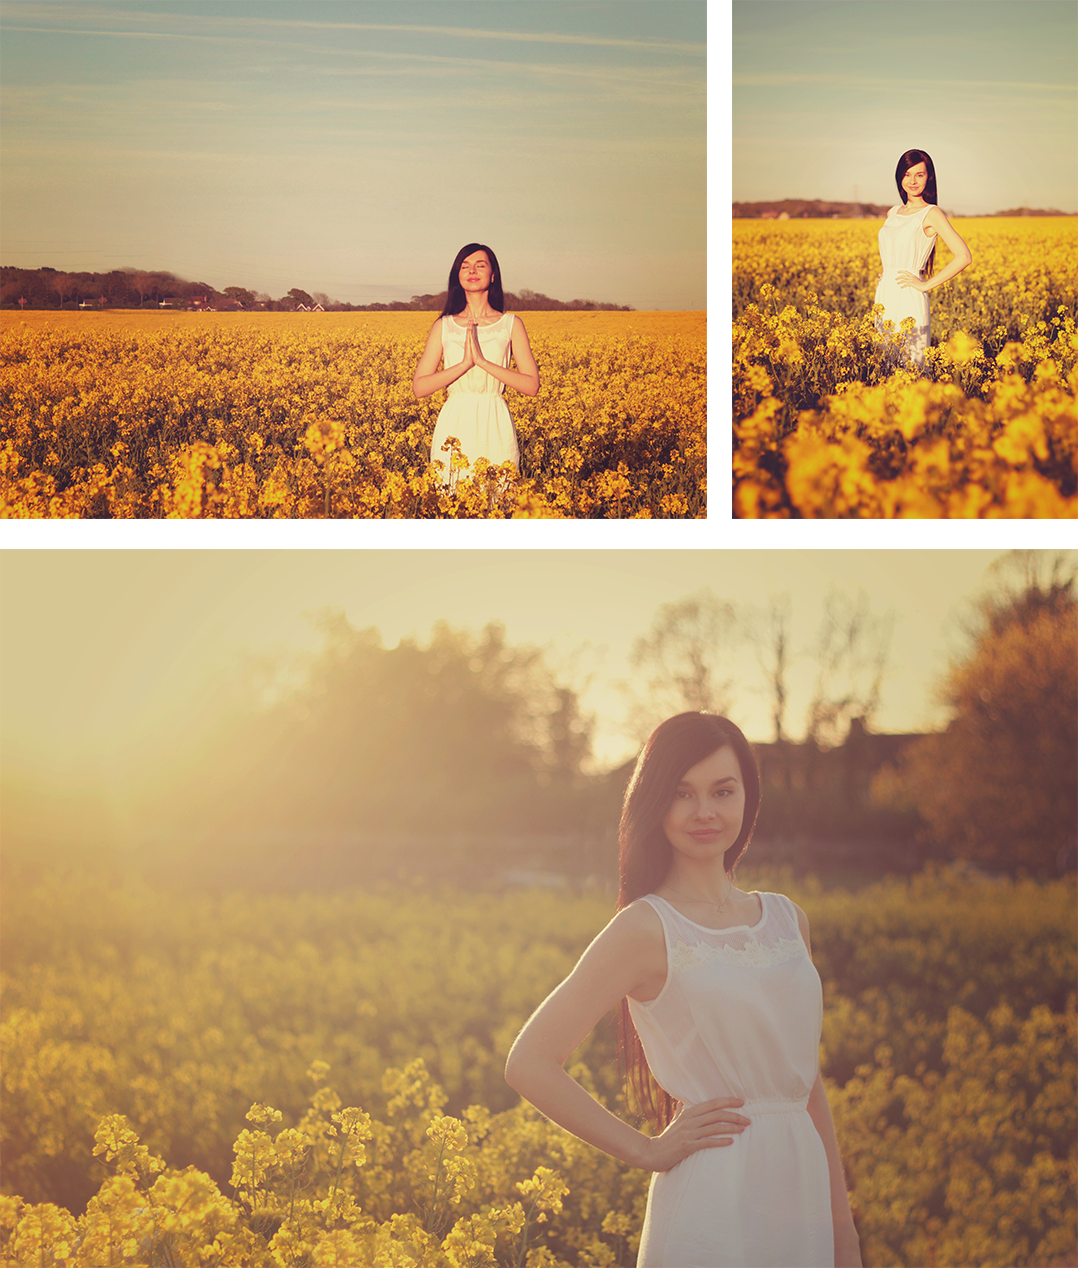 Photoshoot at sunset